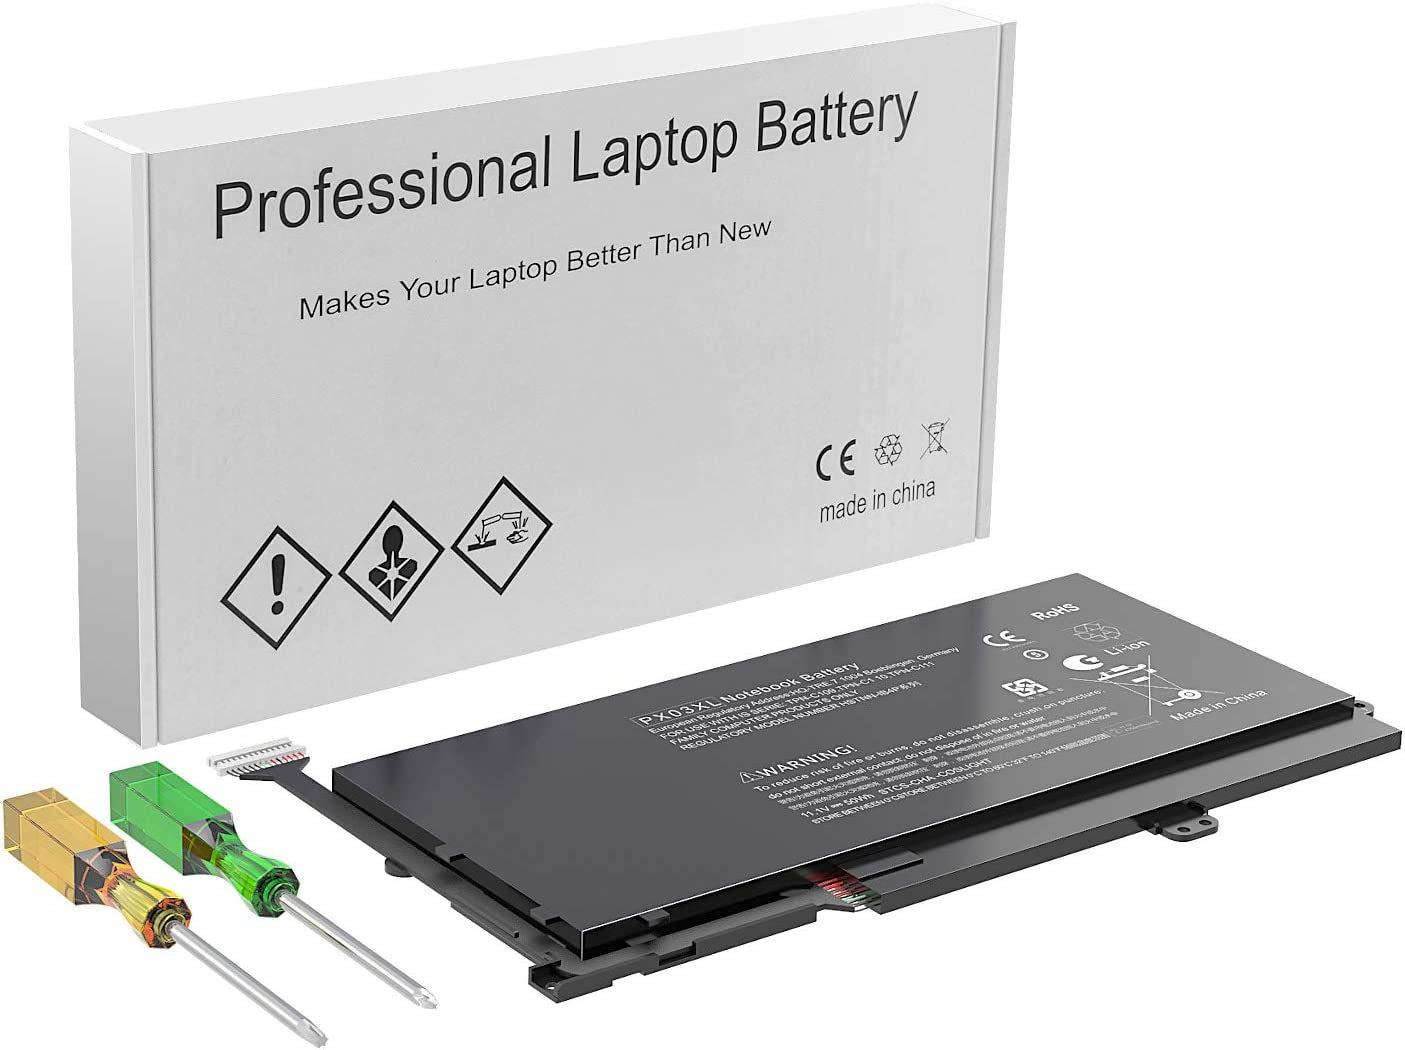 PX03XL Laptop Battery Compatible with HP Envy 14 Touchsmart M6 Series M6-k M6-k022dx M6-k010dx M6-k025dx M6-K015DX M6-k125dx 14-K002TX 14- K112NR TPN-C111 TPN-C110 TPN-C109 715050-001 714762-1C1